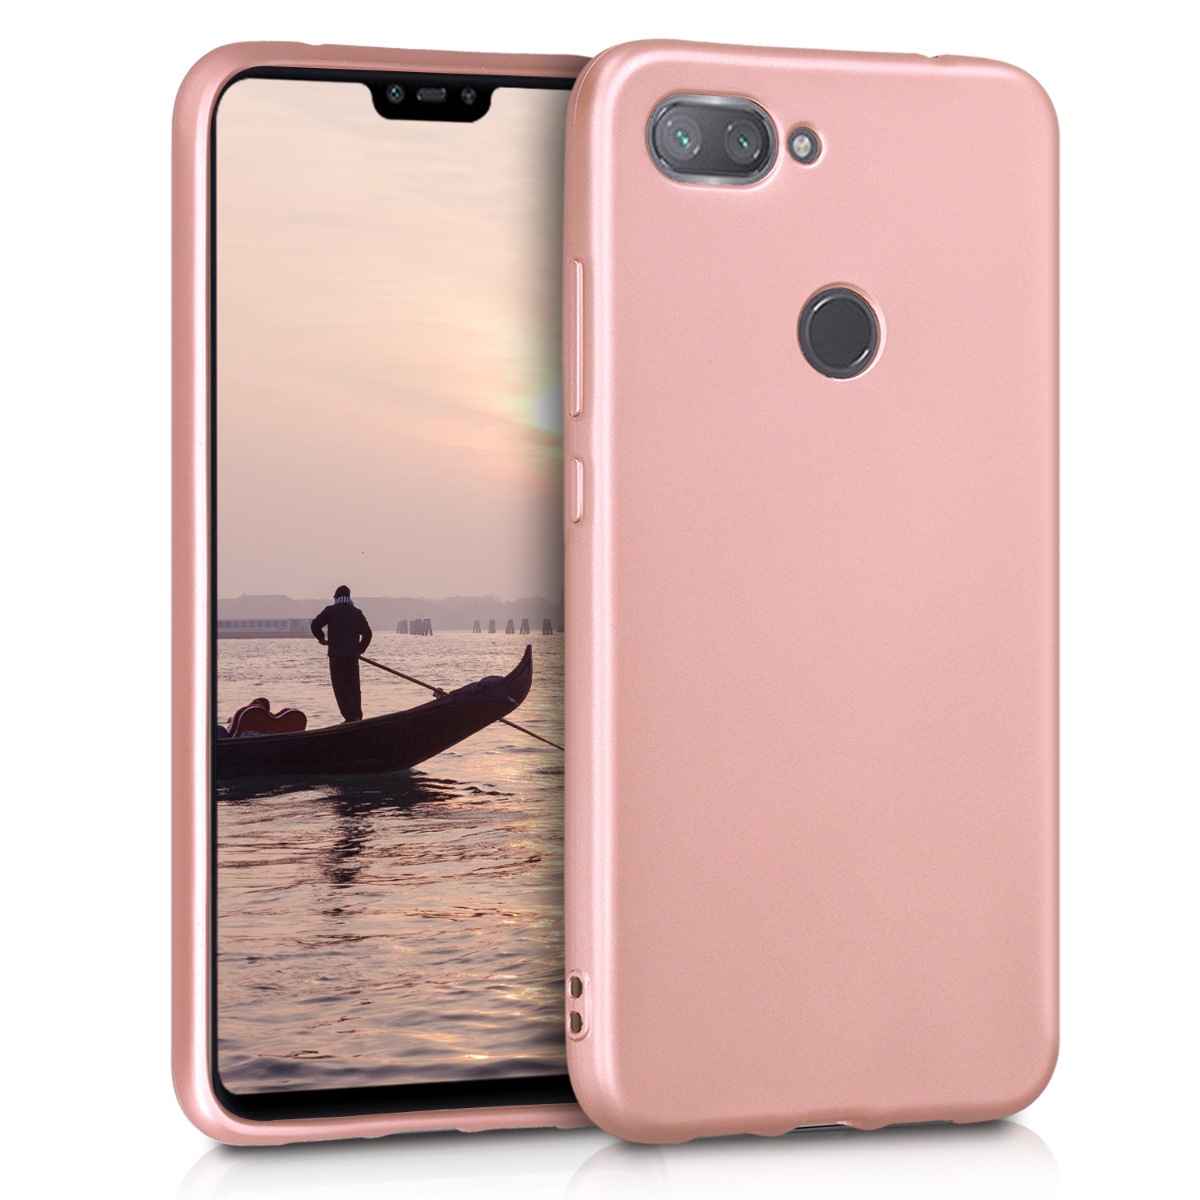 KW Θήκη Σιλικόνης Xiaomi Mi 8 Lite - Metallic Rose Gold (47930.31)